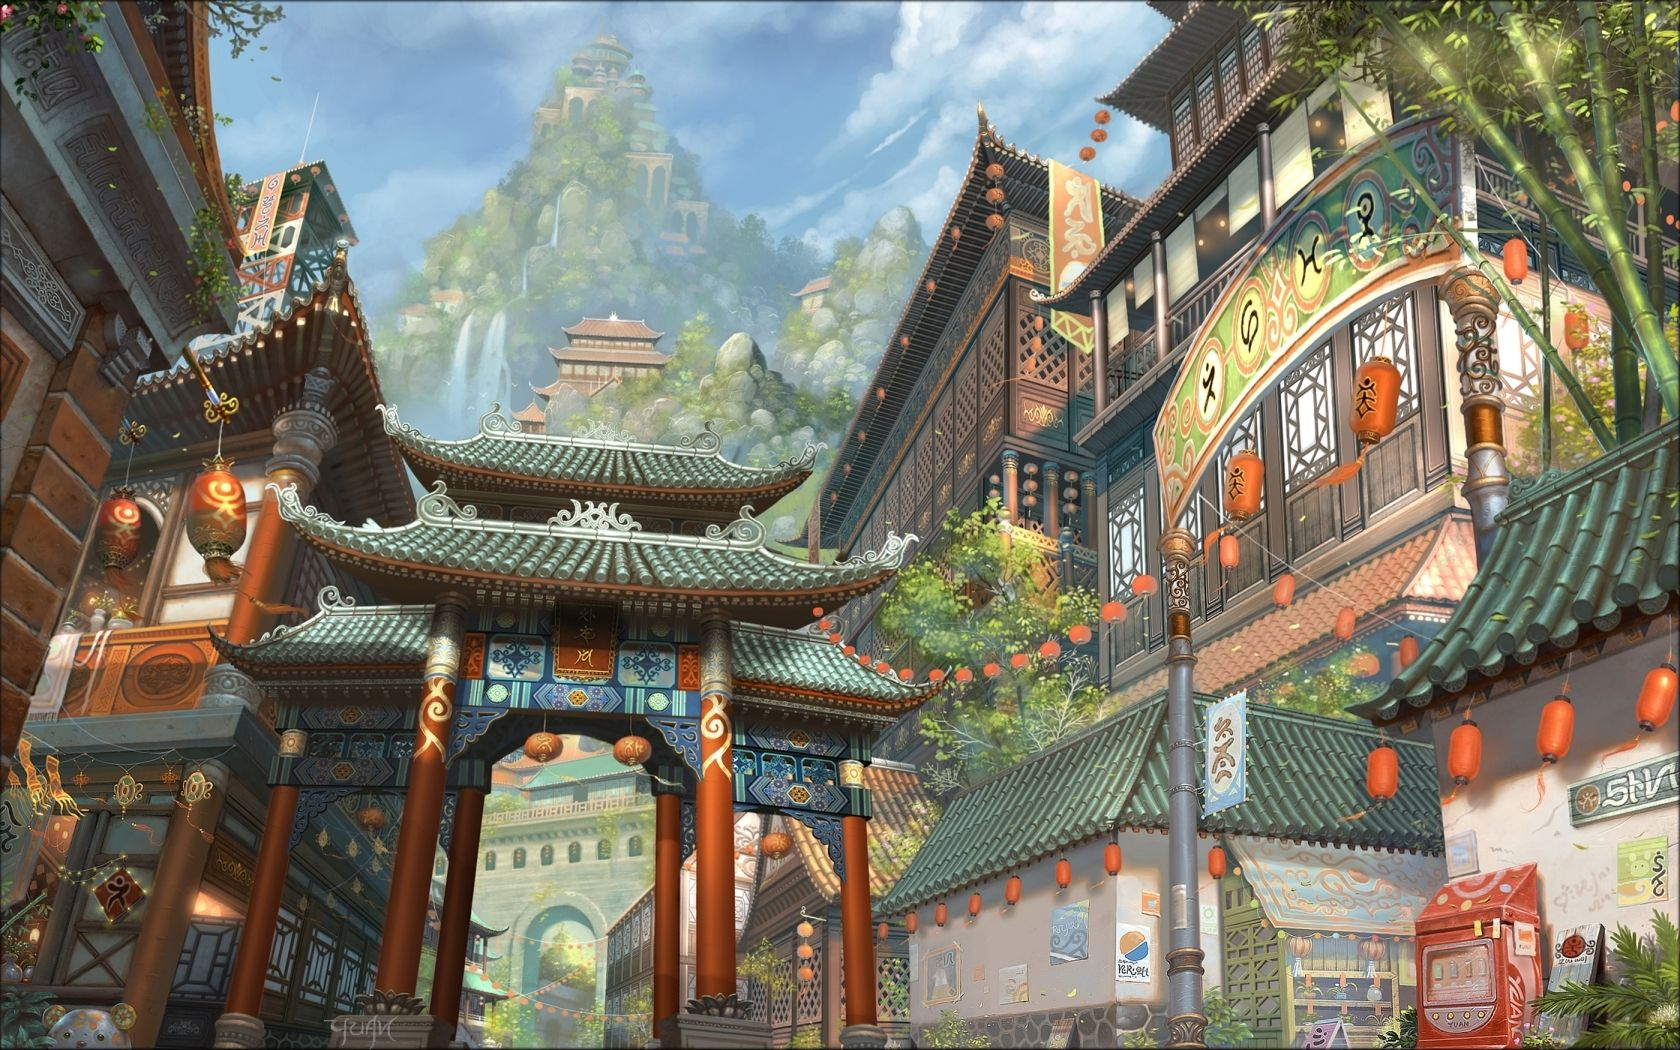 Landscapes Cityscapes Japanese Outdoors Chinese Fantasy Art Asians Korean Artwork 1680x1050 Wallp Wall Fantasy Concept Art Japanese Fantasy Landscape Wallpaper